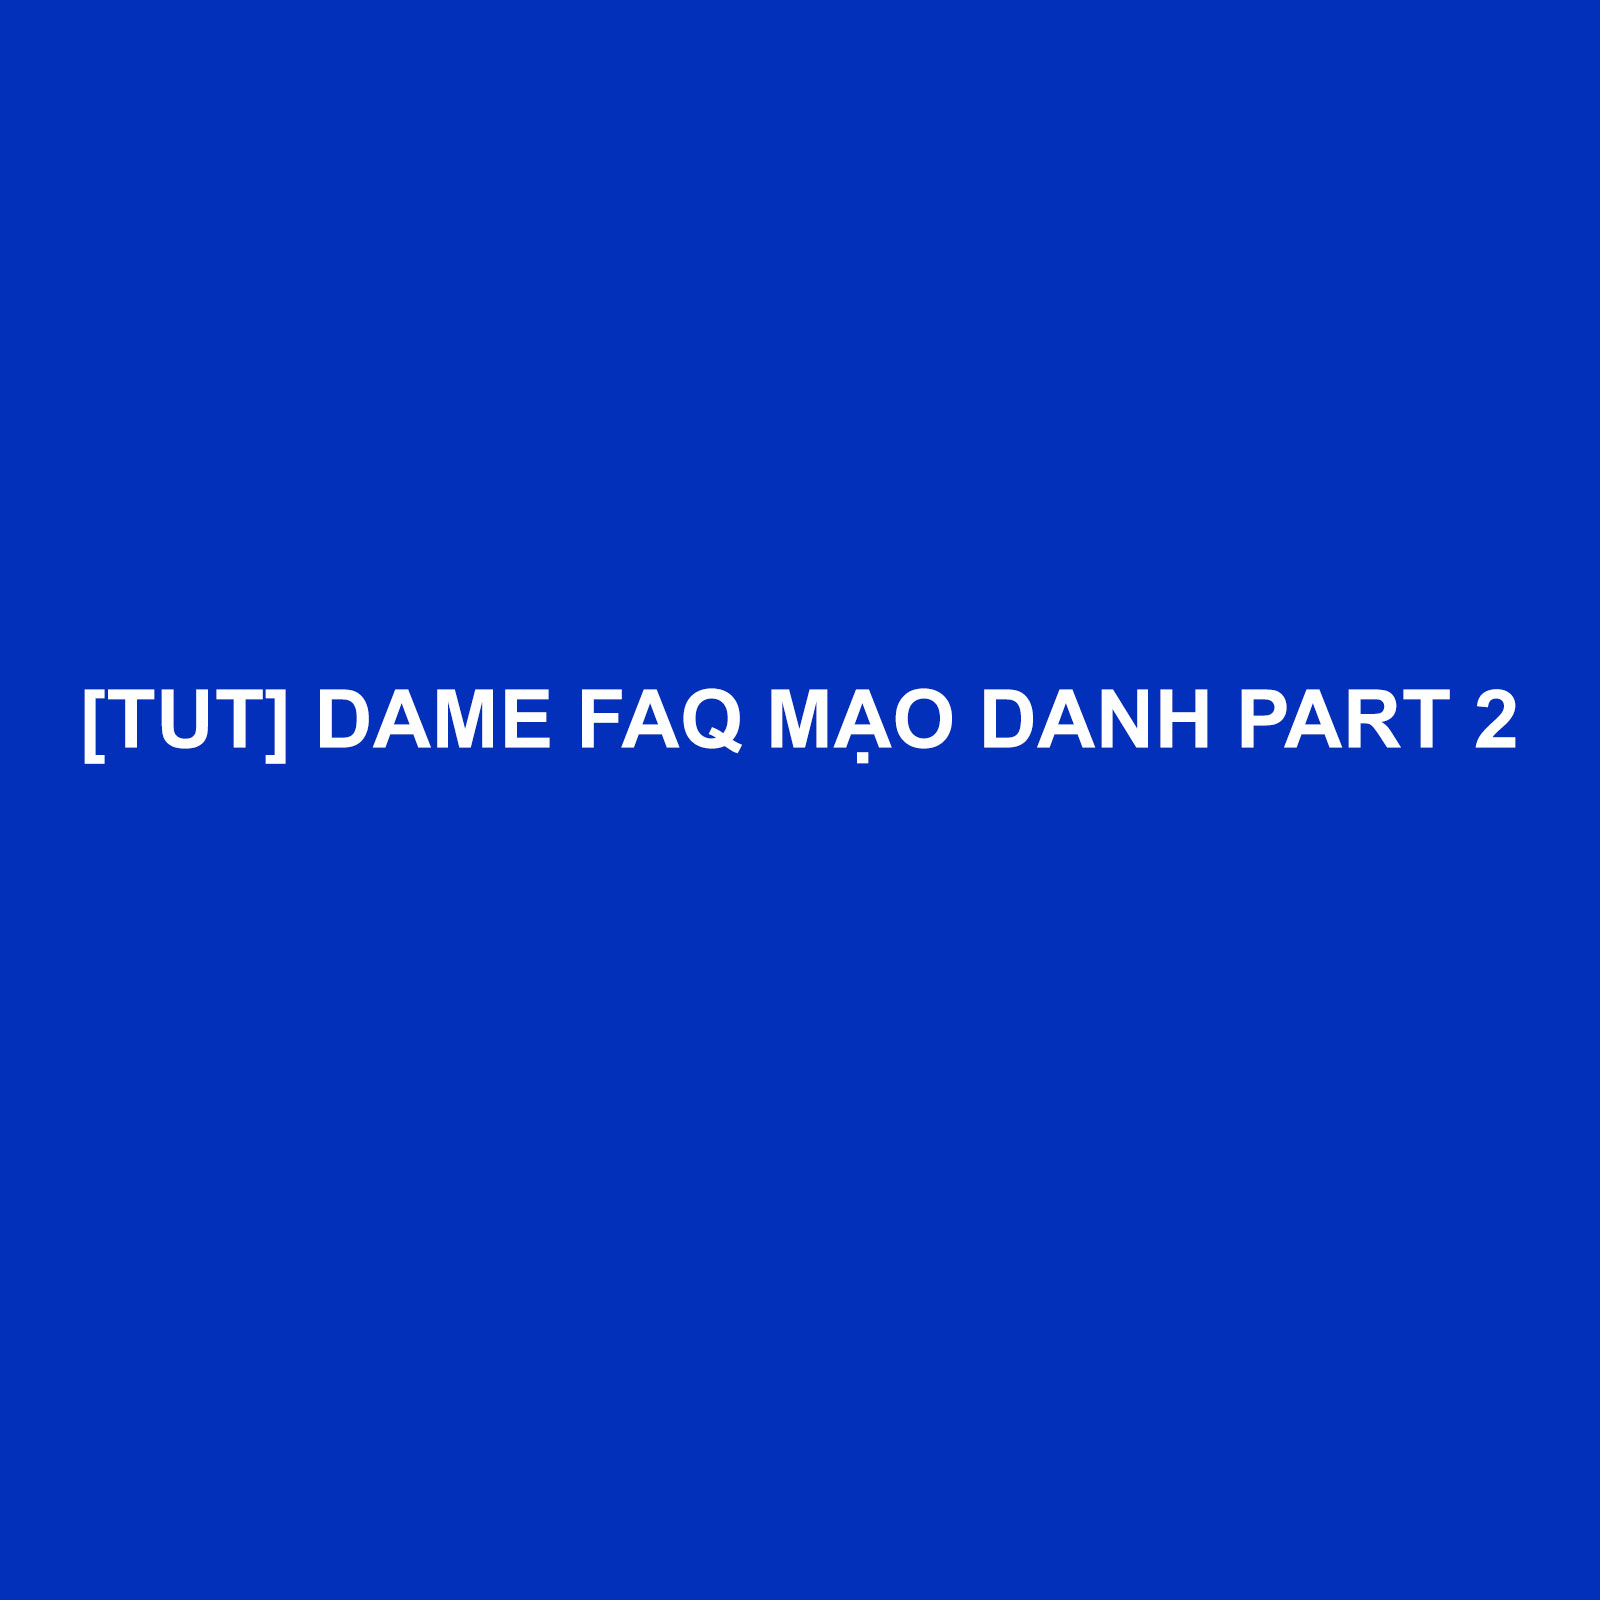 tut-dame-faq-md-part-2,-rip-faq-md-part-2,-report-faq-md-part-2,-huong-dan-cach-rip-nich-faq-md-part-2-cach-dame-faq-facebook,-faq-md-part-2